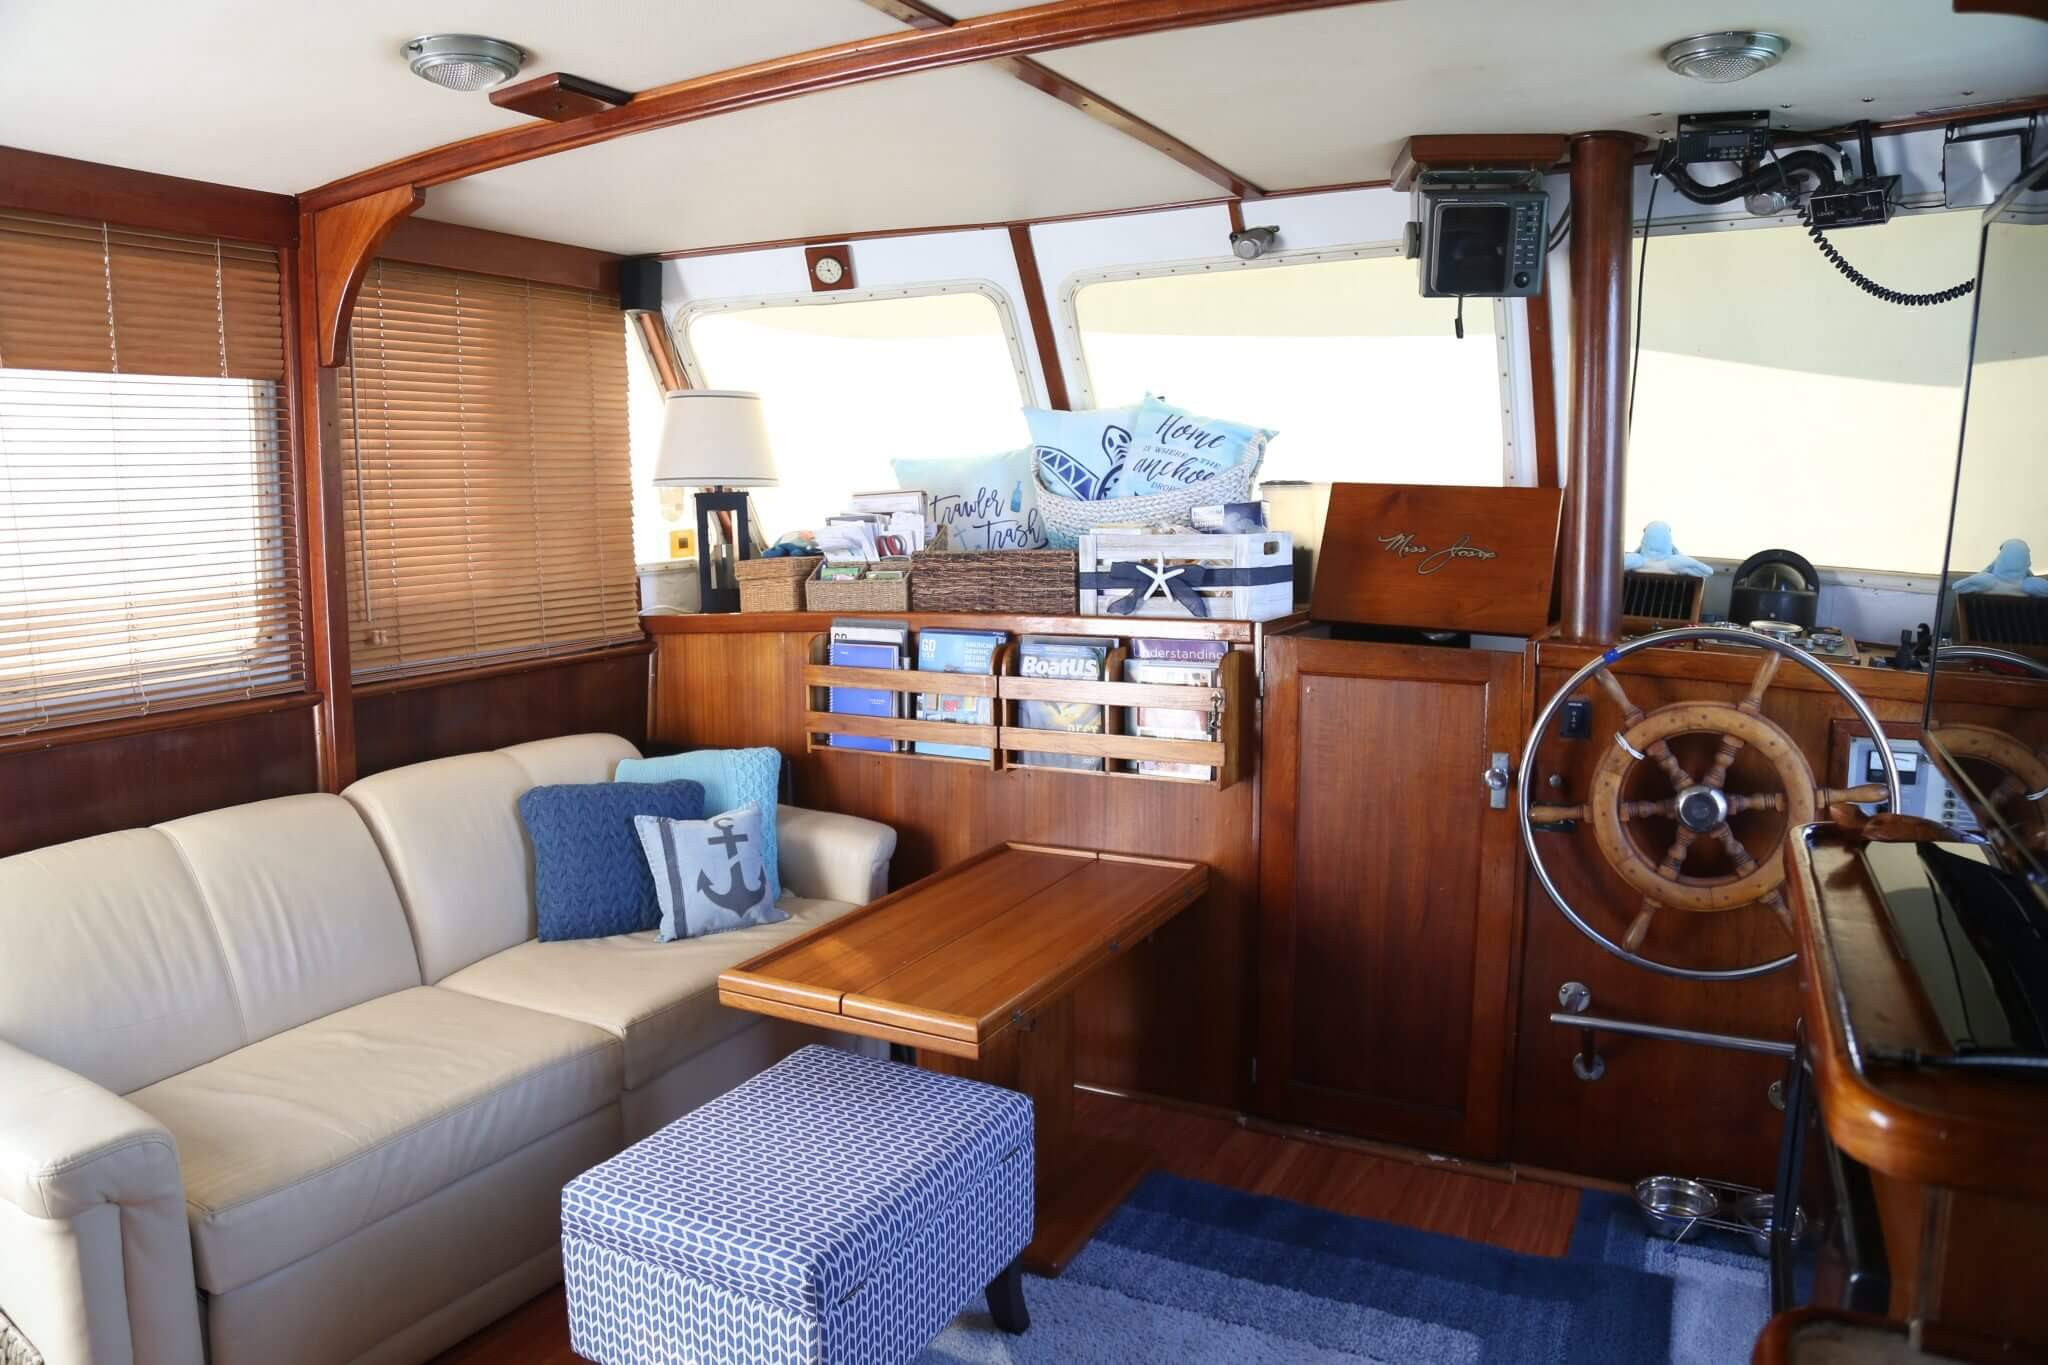 Wonderful Boat Interior Storage Ideas OR Where To Put All Your Stuff?